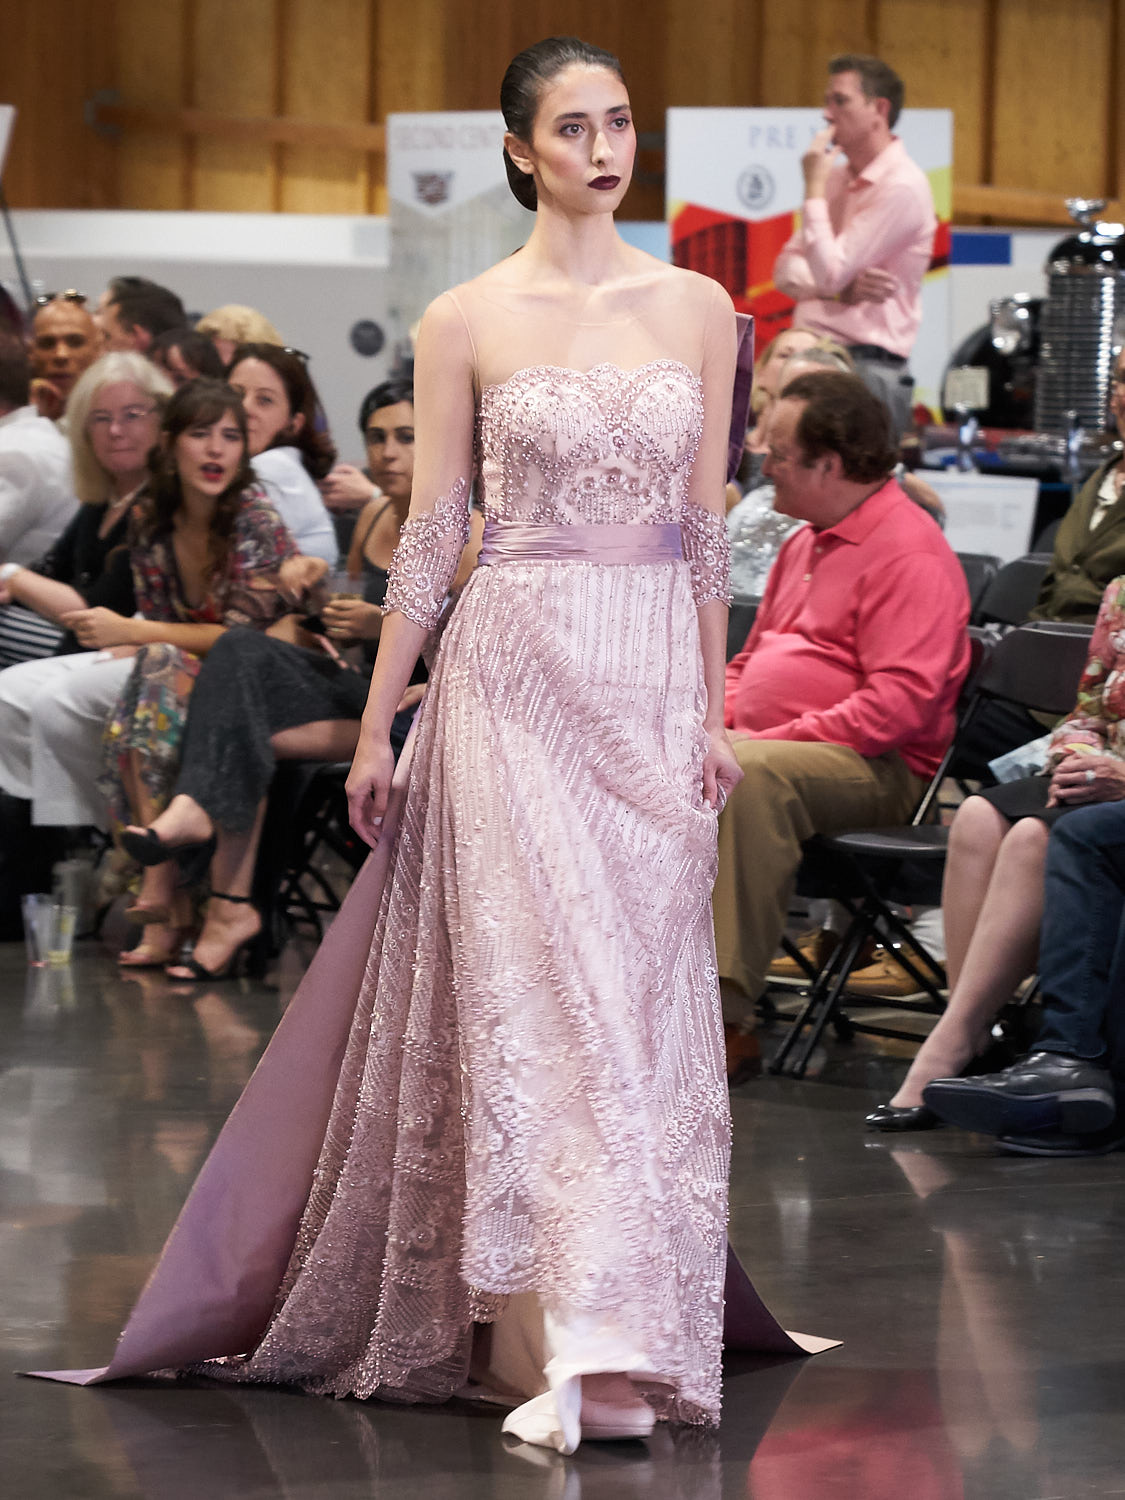 AMVISUALS-Couture-Cars-Fashion-Show-LeMay-Museum-Tacoma-Fashion-29.jpg